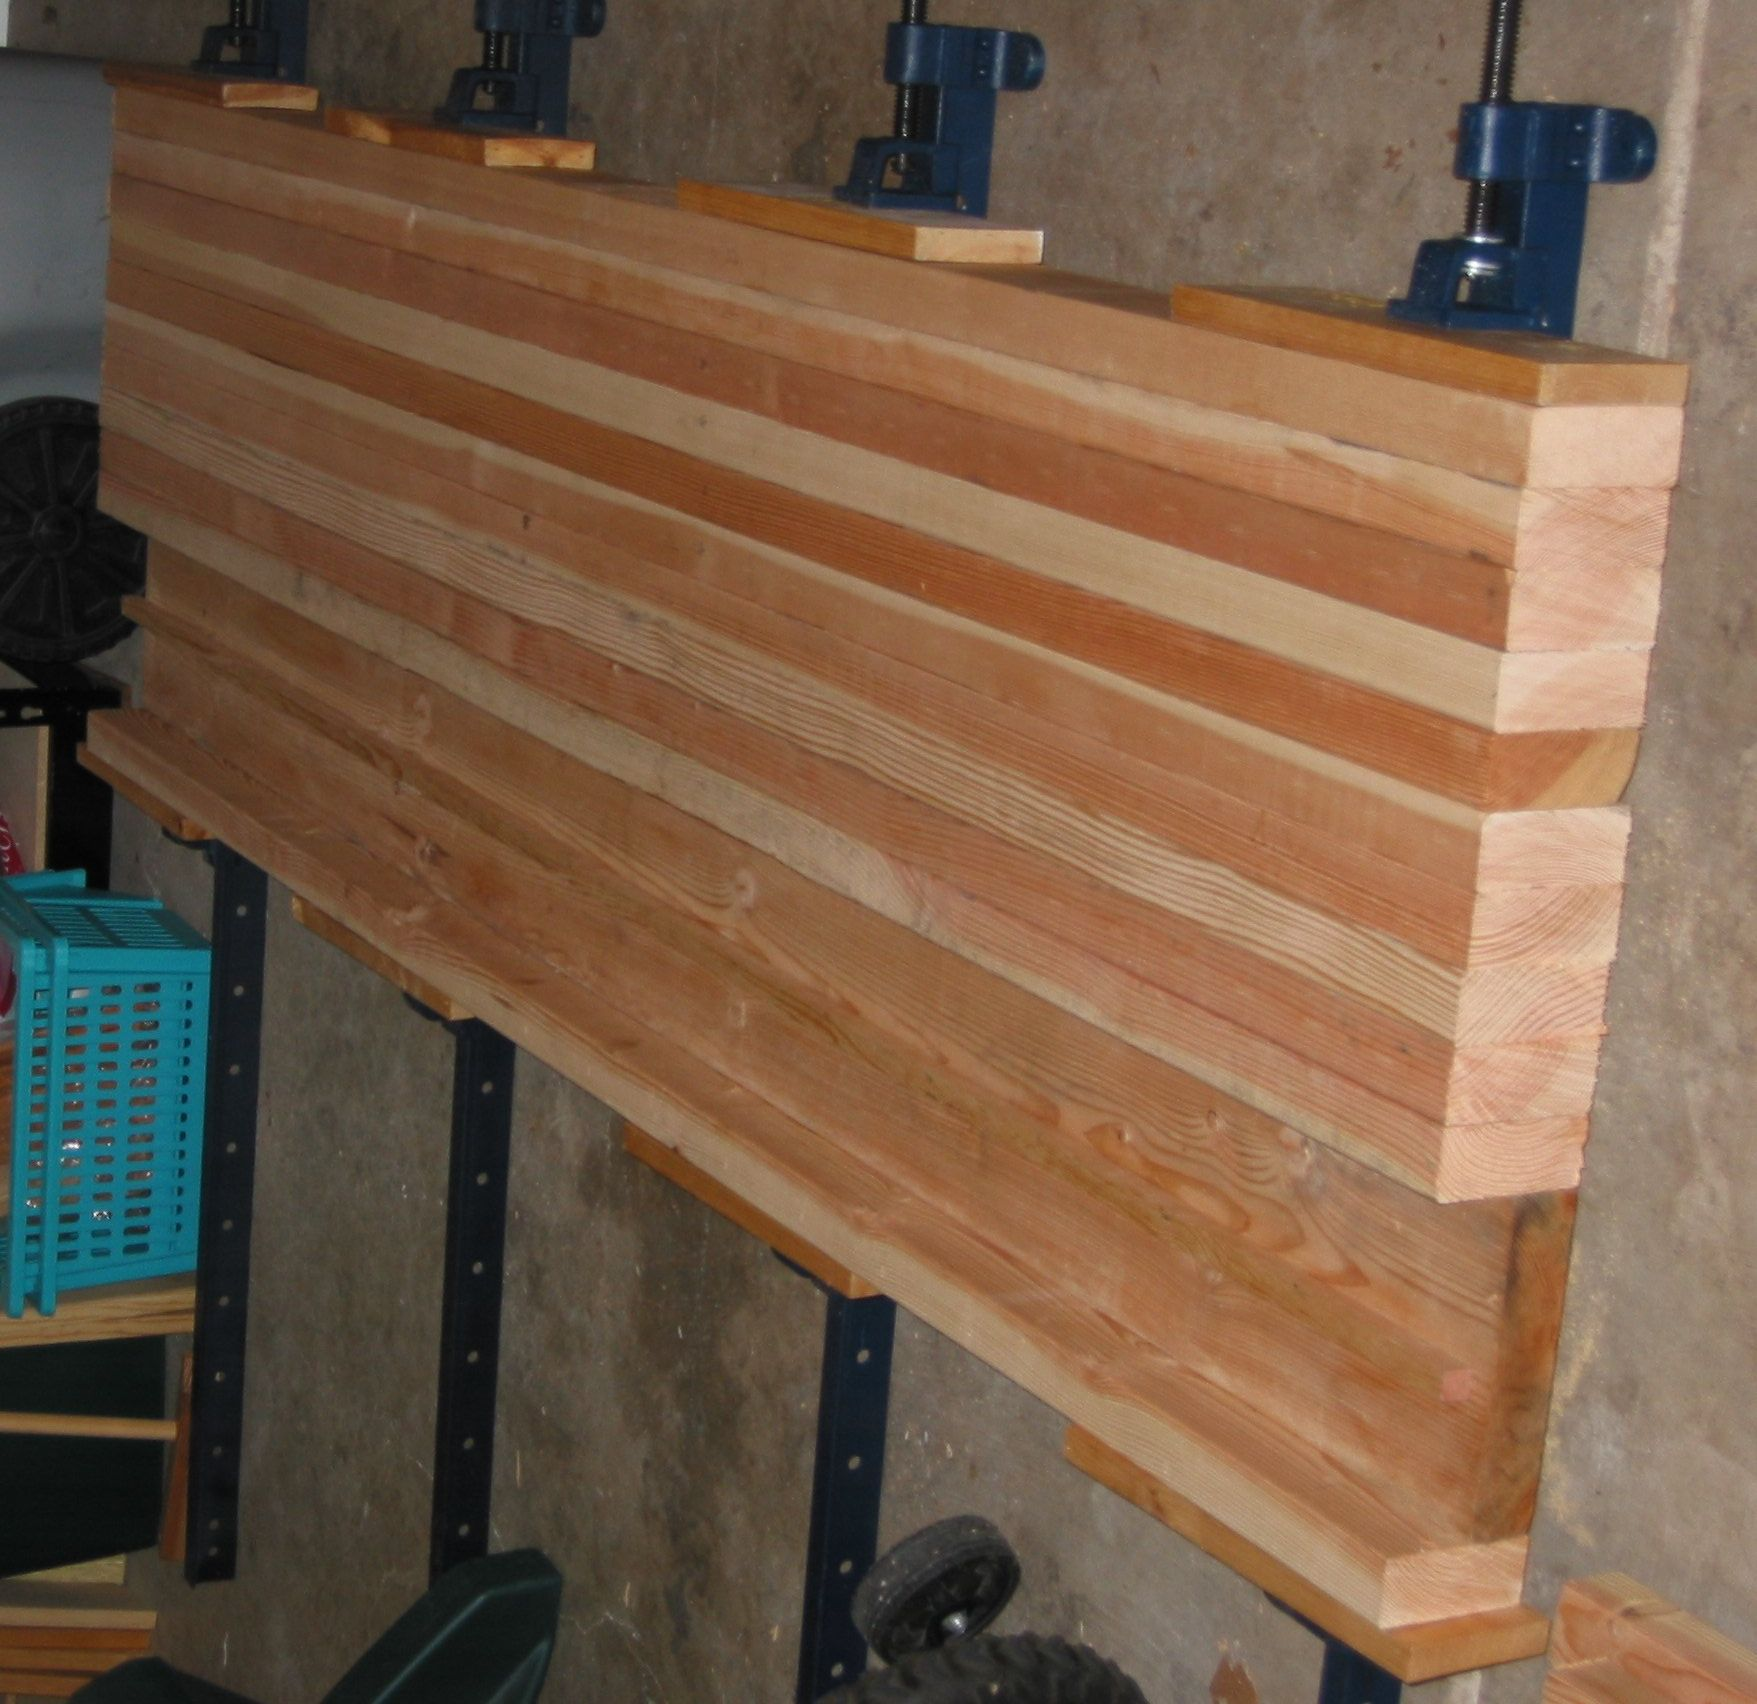 Workbench top using 2X4's or 2X3's | Shop Ideas ...